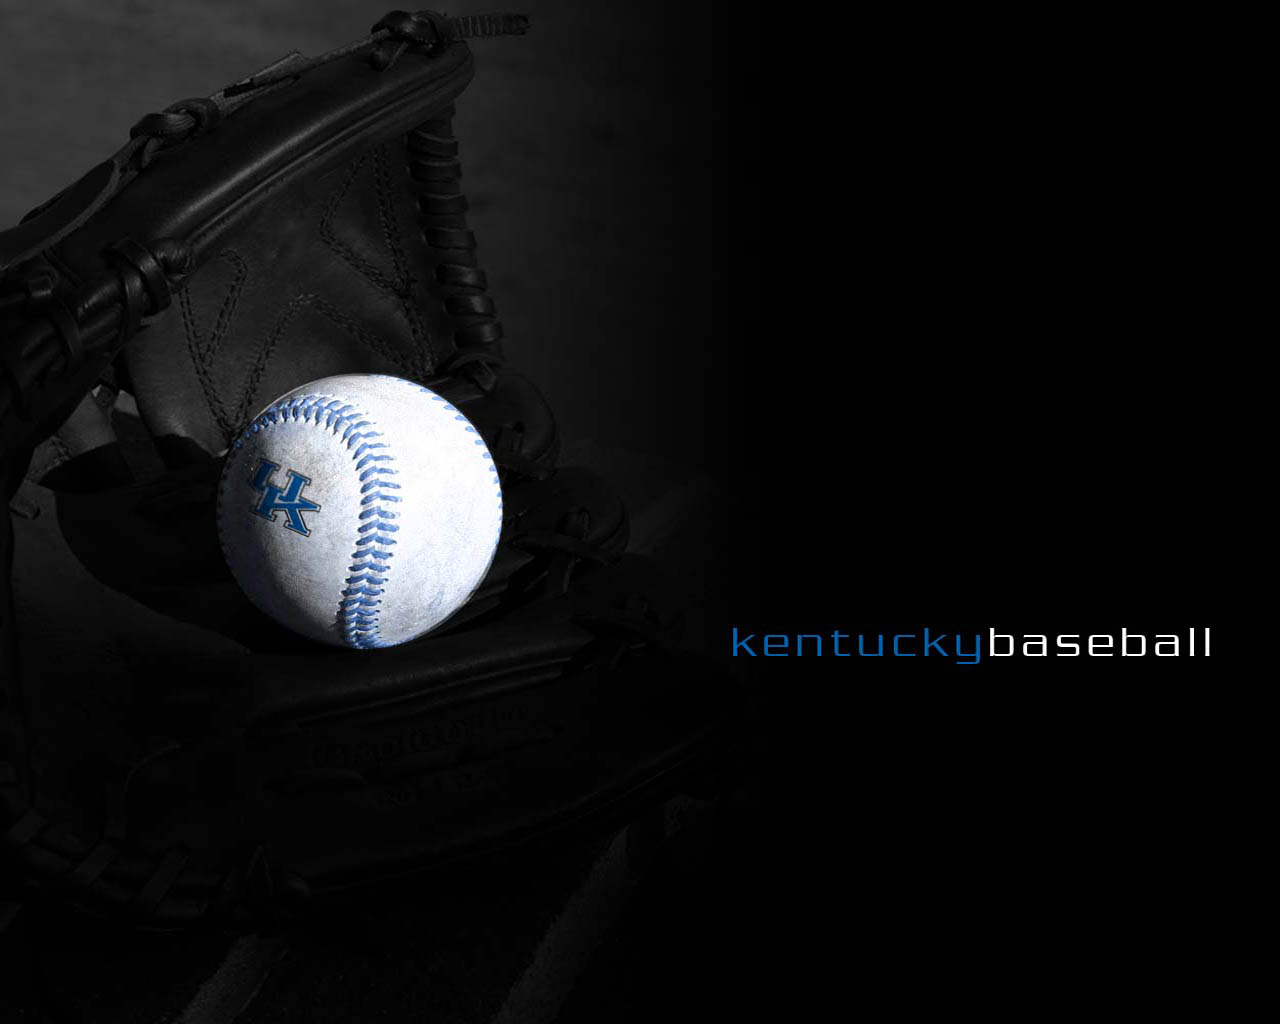 Baseball wallpapers | xc 4